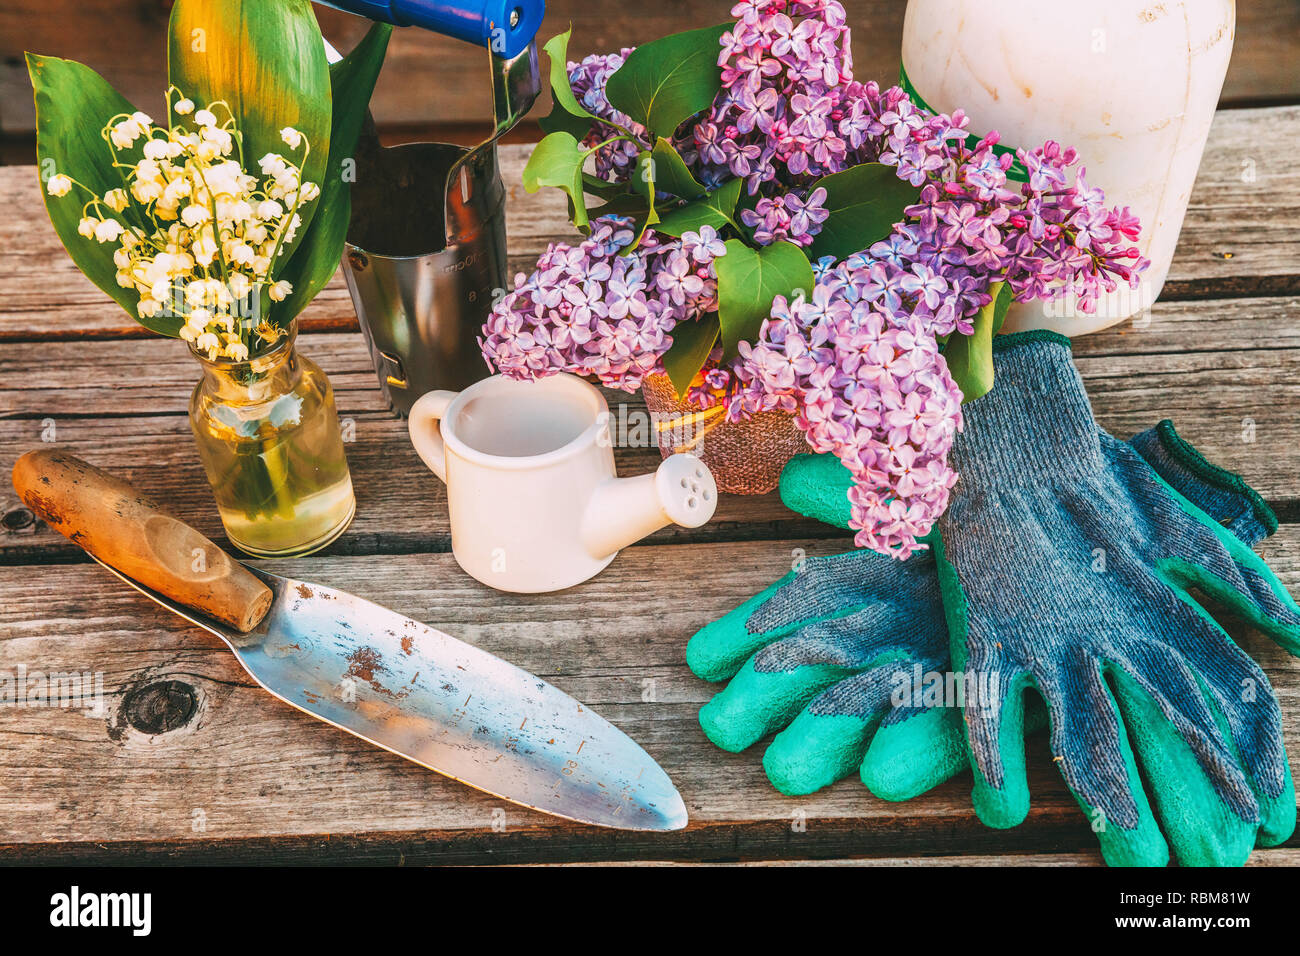 Gardening tools, watering can, shovel, spade, pruner, rake, glove, lilac flowers on wooden table in barn. Spring or summer in garden. Eco nature horti - Stock Image